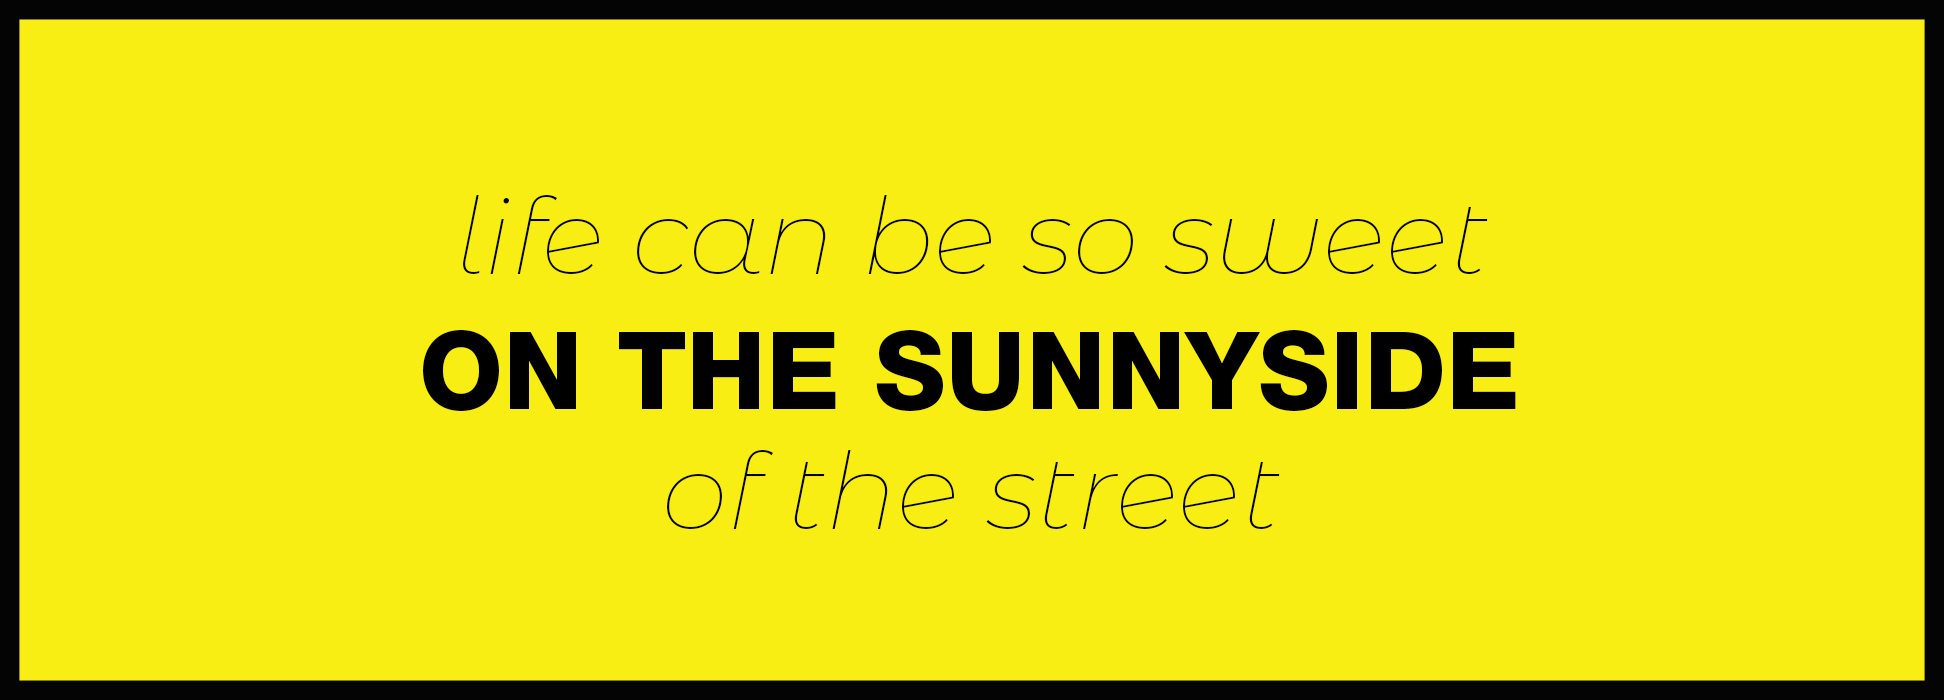 Life can be so sweet on the sunny side of the street